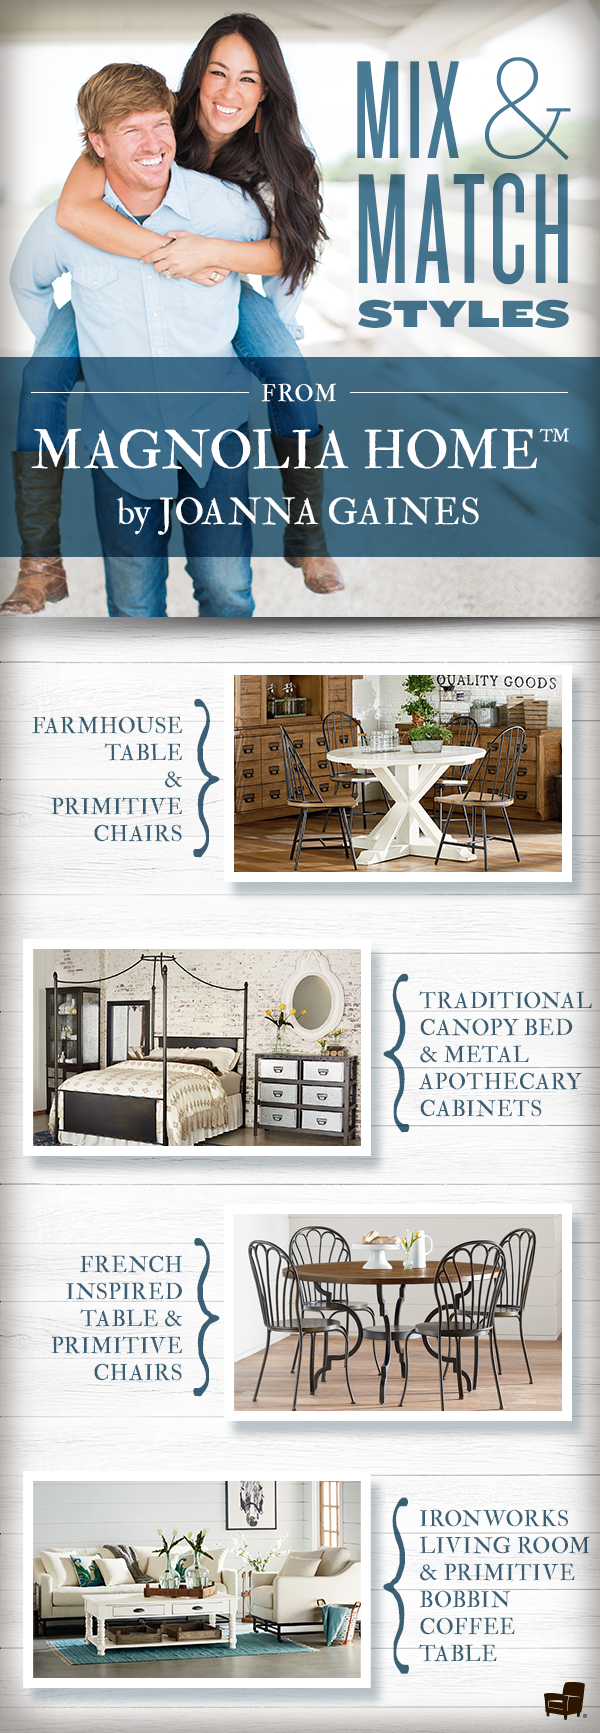 thoughtfully designed by joanna gaines herself each magnolia home piece creatively combines. Black Bedroom Furniture Sets. Home Design Ideas